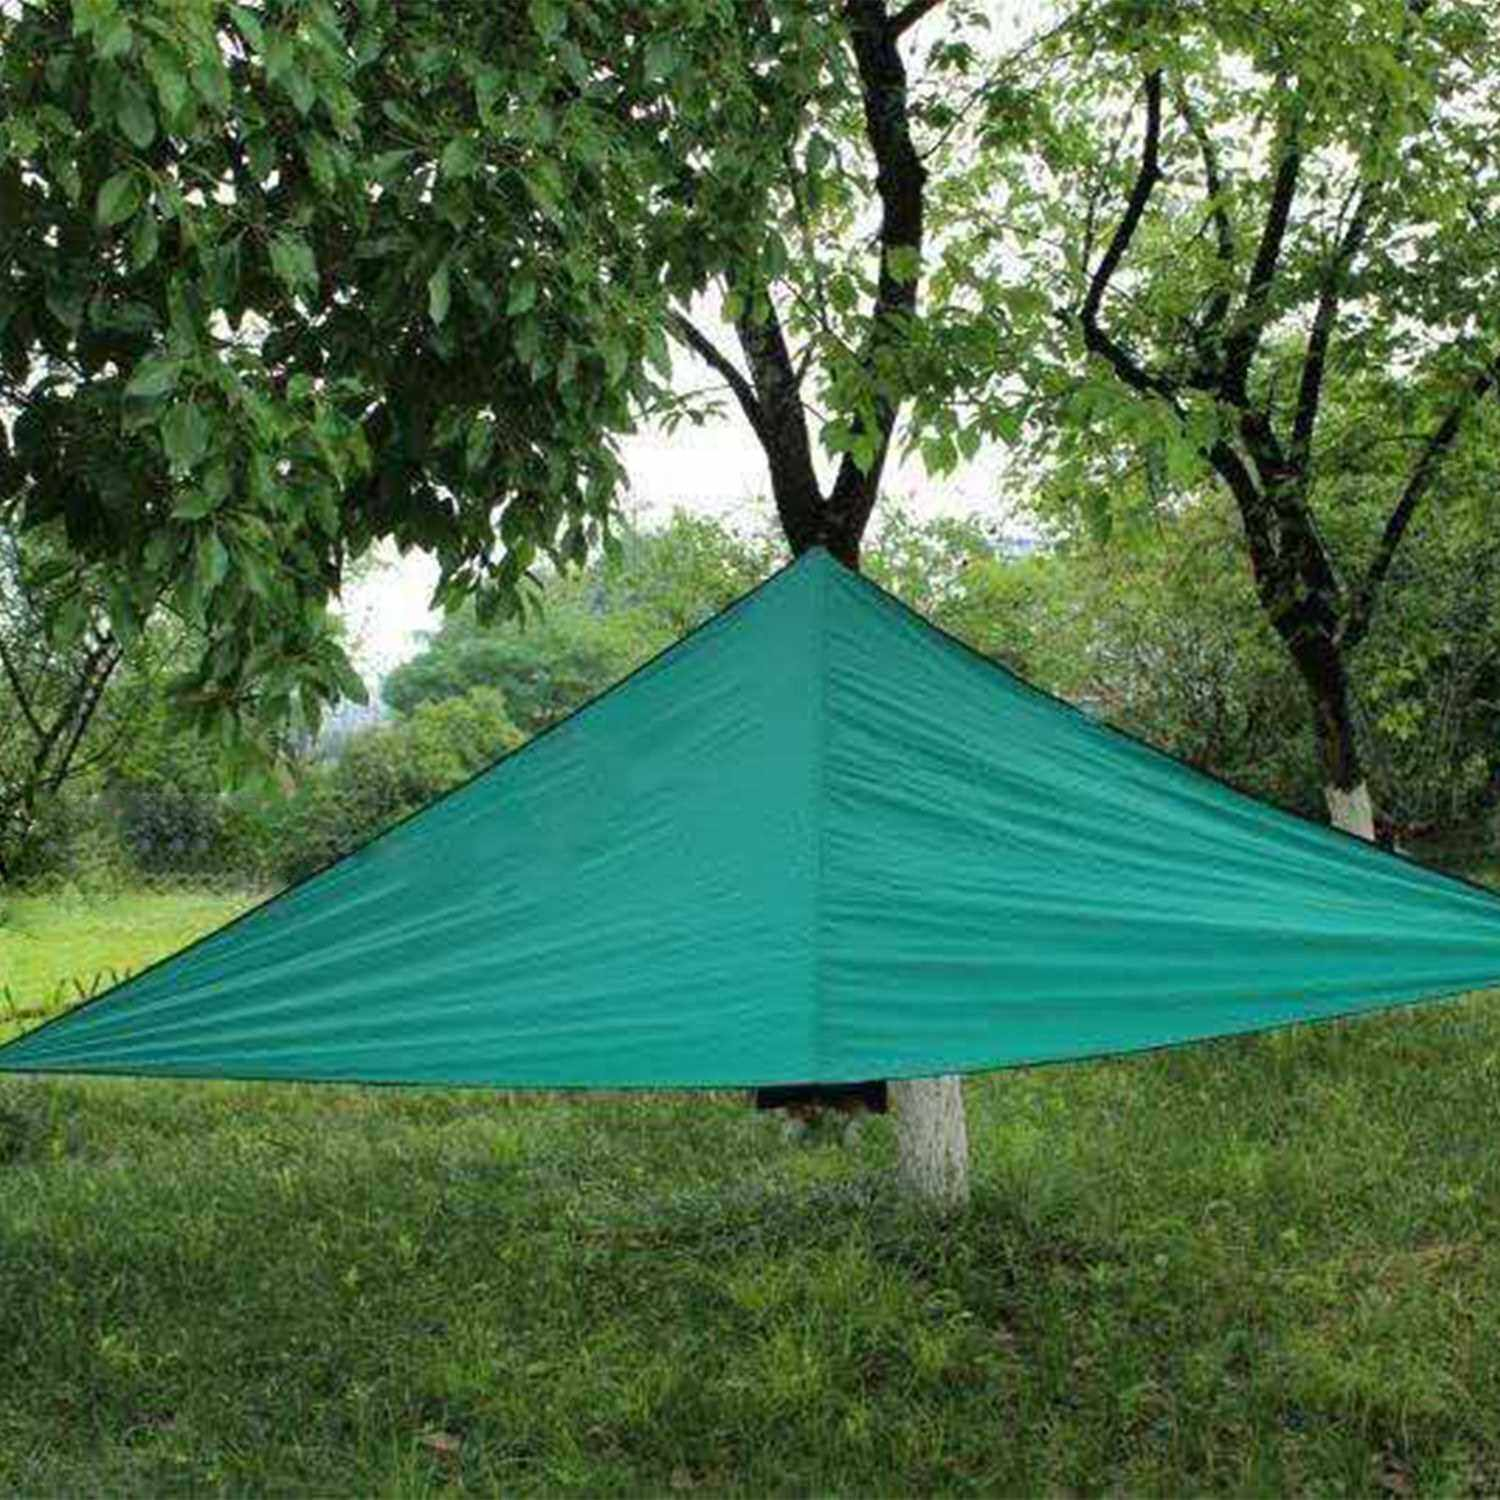 Best Selling 10ft Rain Fly UV Resistant Sun Shade Sail Canopy Waterproof Heavy Duty Triangle 210T Polyester Awning Sand Sunshade for Outdoor Patio Garden Backyard Activities (Dark Green)